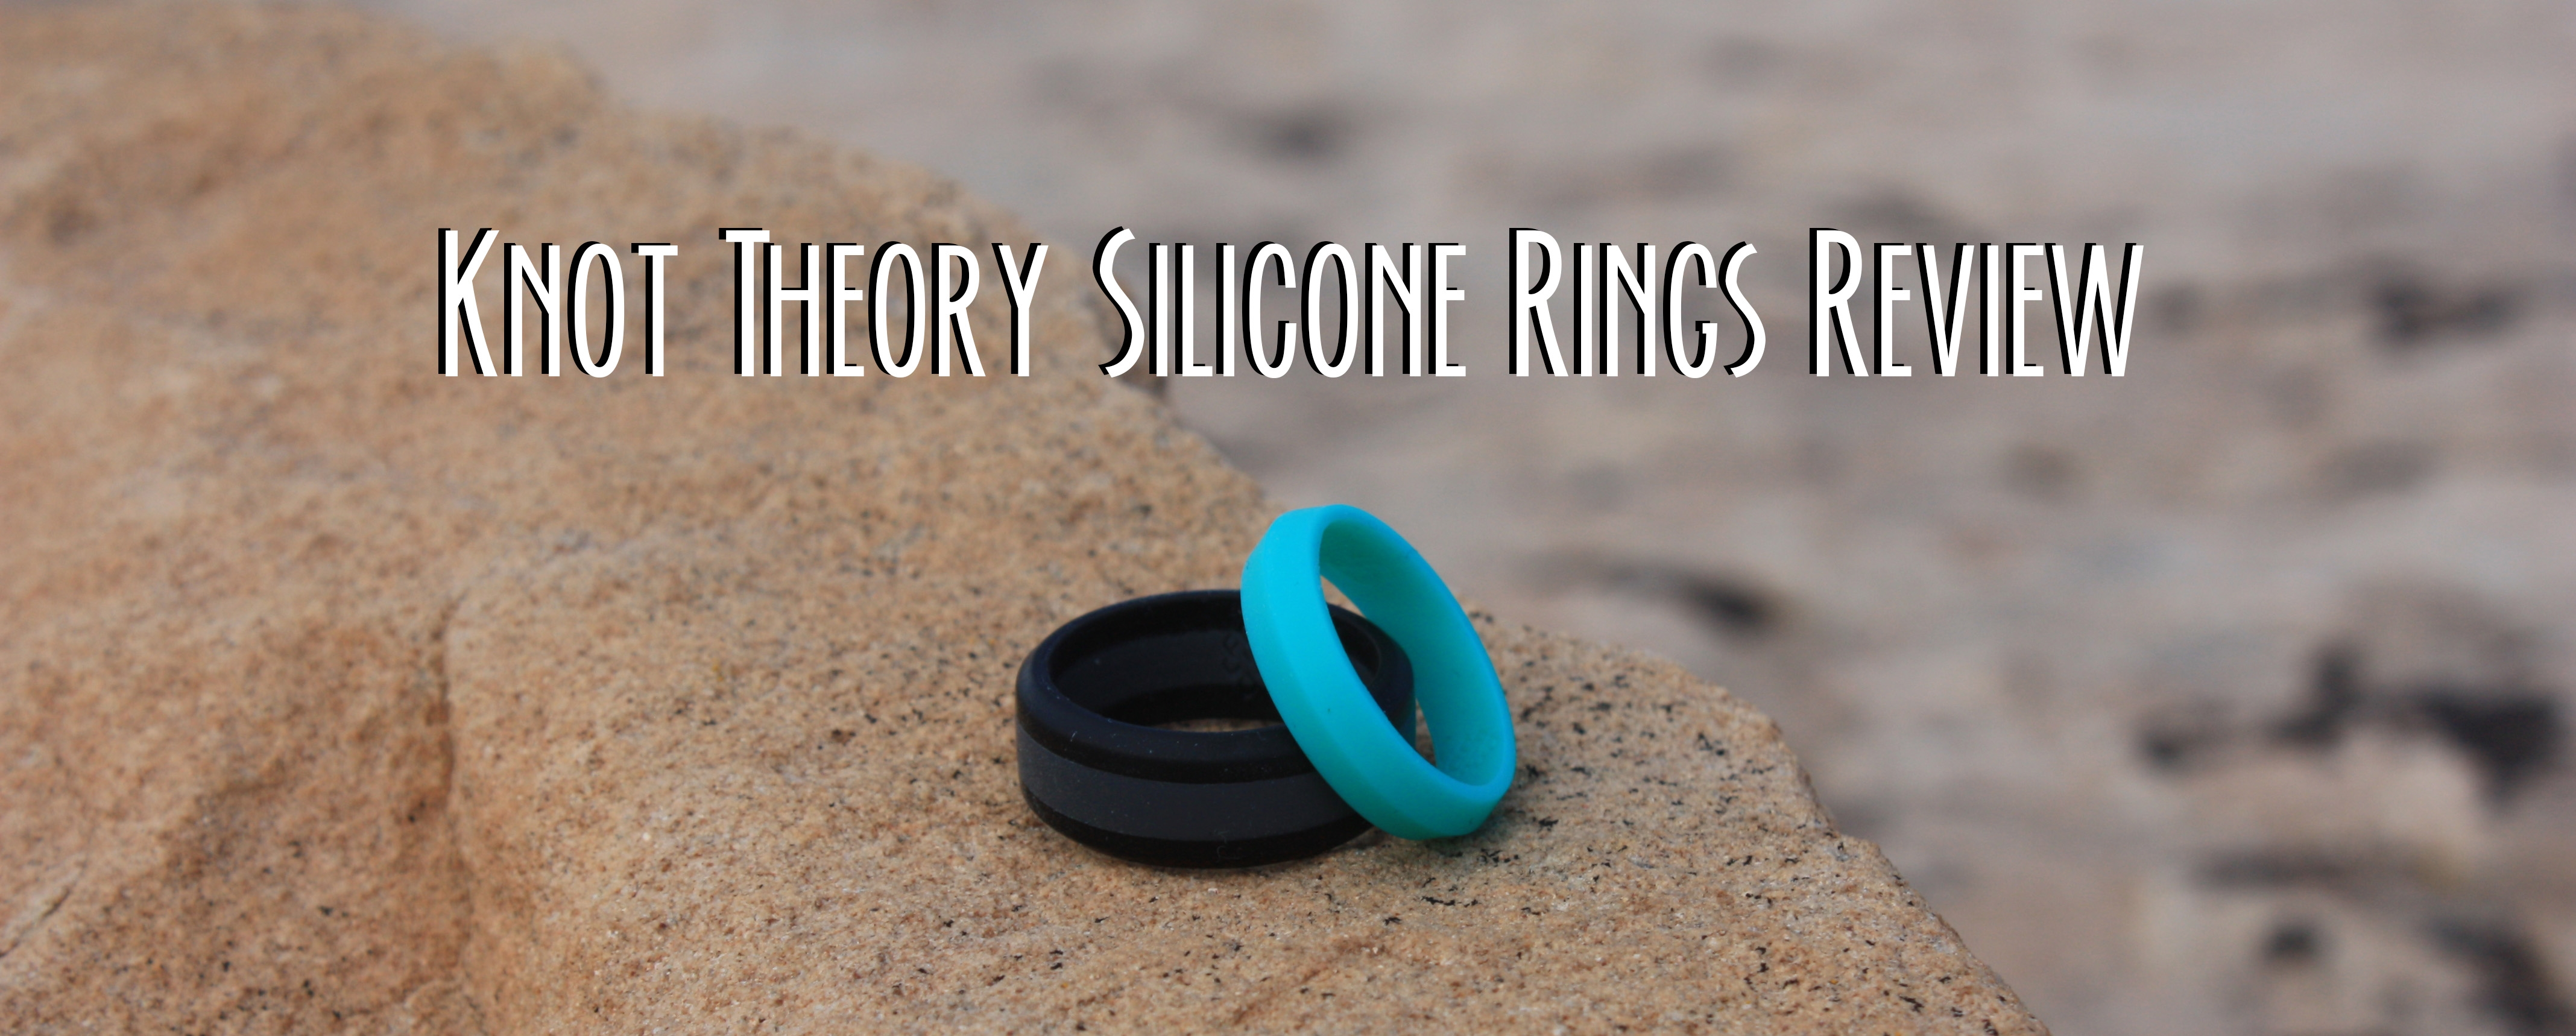 timeless collection space elegance products kauai silicone silicon valyrian rings gray ring steel